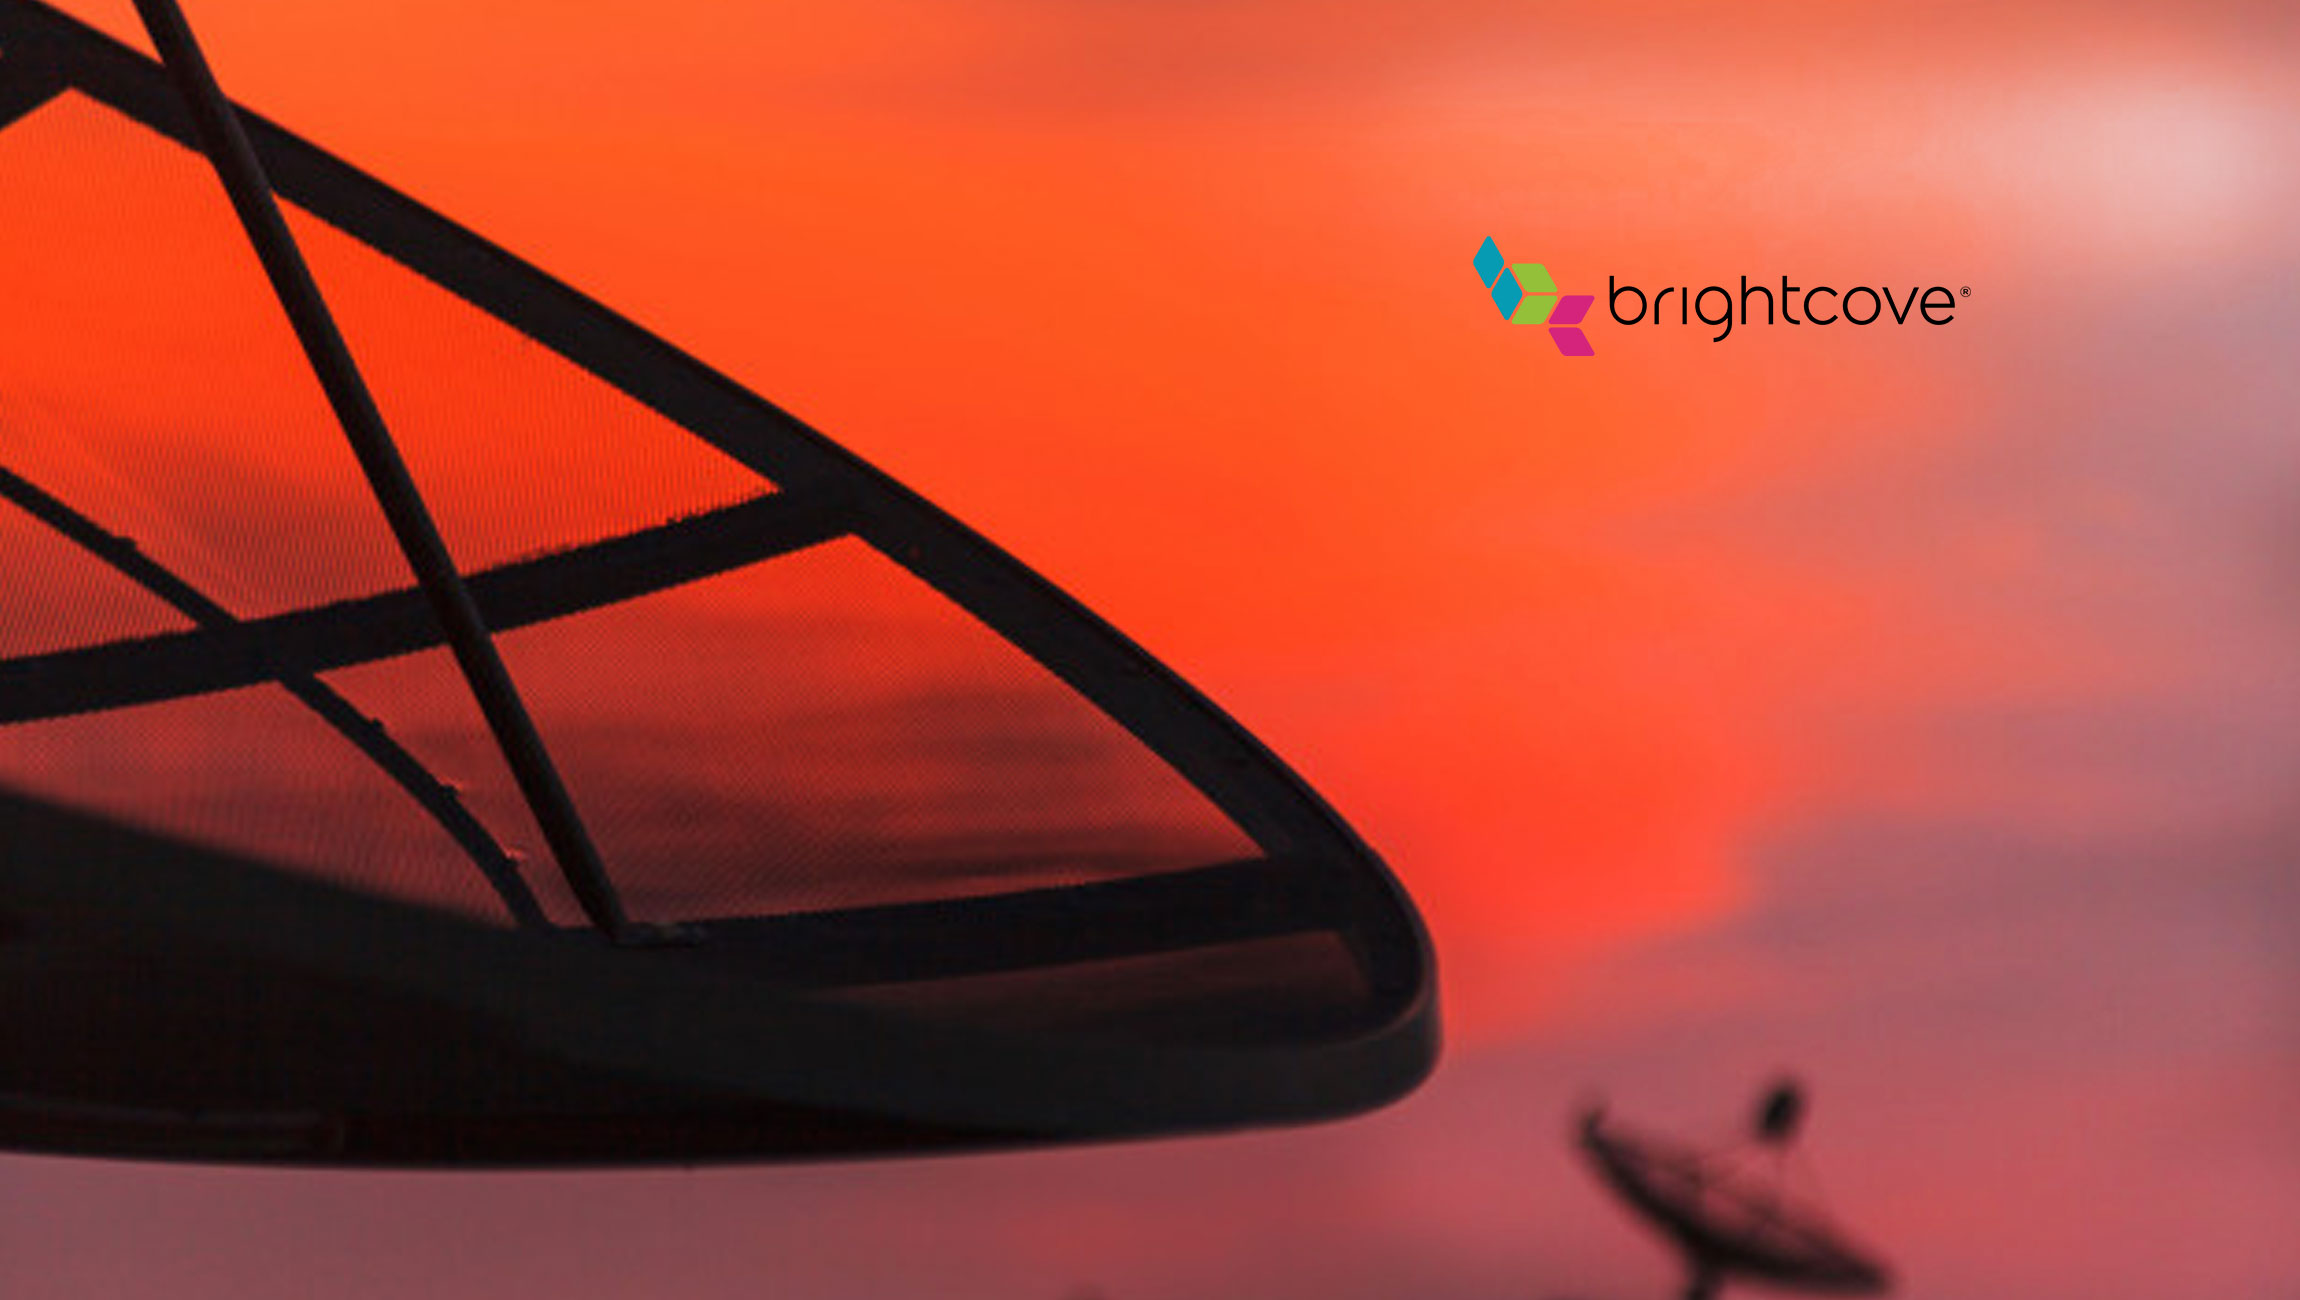 Brightcove Publishes Annual Asia Over-The-Top (OTT) TV Research Report On User Adoption, Payment, and Advertising Preferences